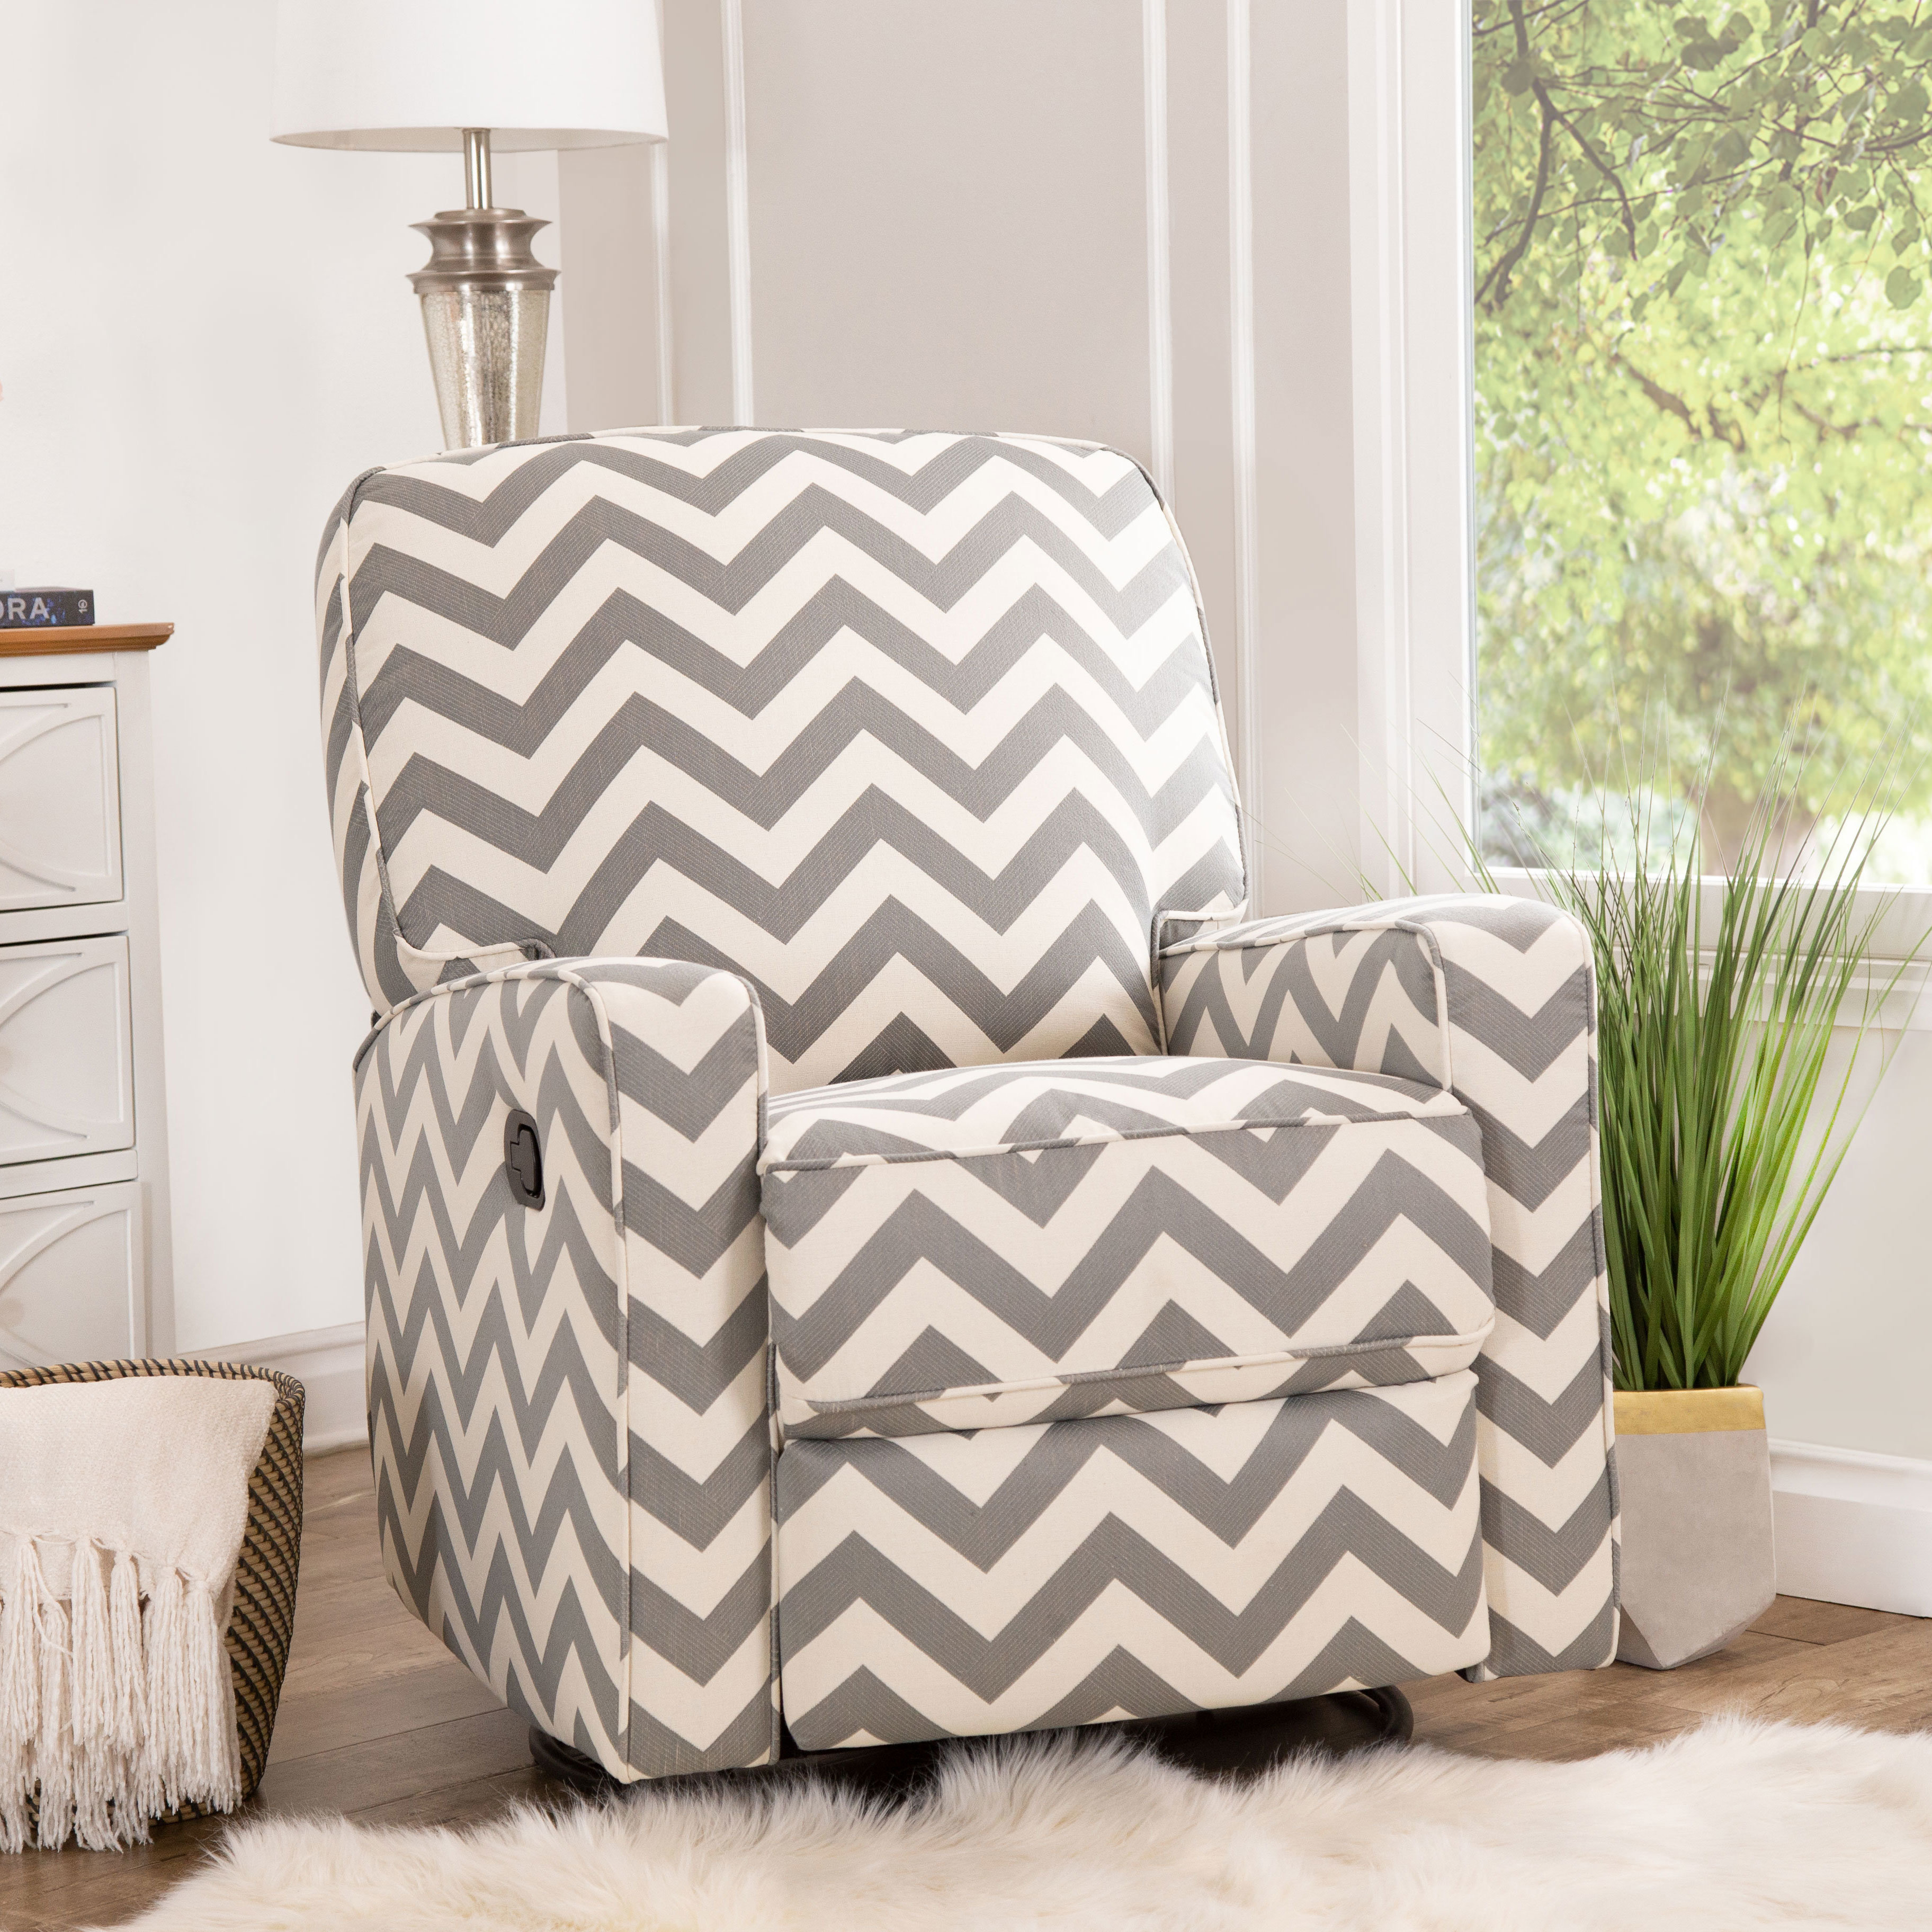 Latitude Run Brittney Swivel Reclining Glider & Reviews | Wayfair In Katrina Grey Swivel Glider Chairs (Image 10 of 20)